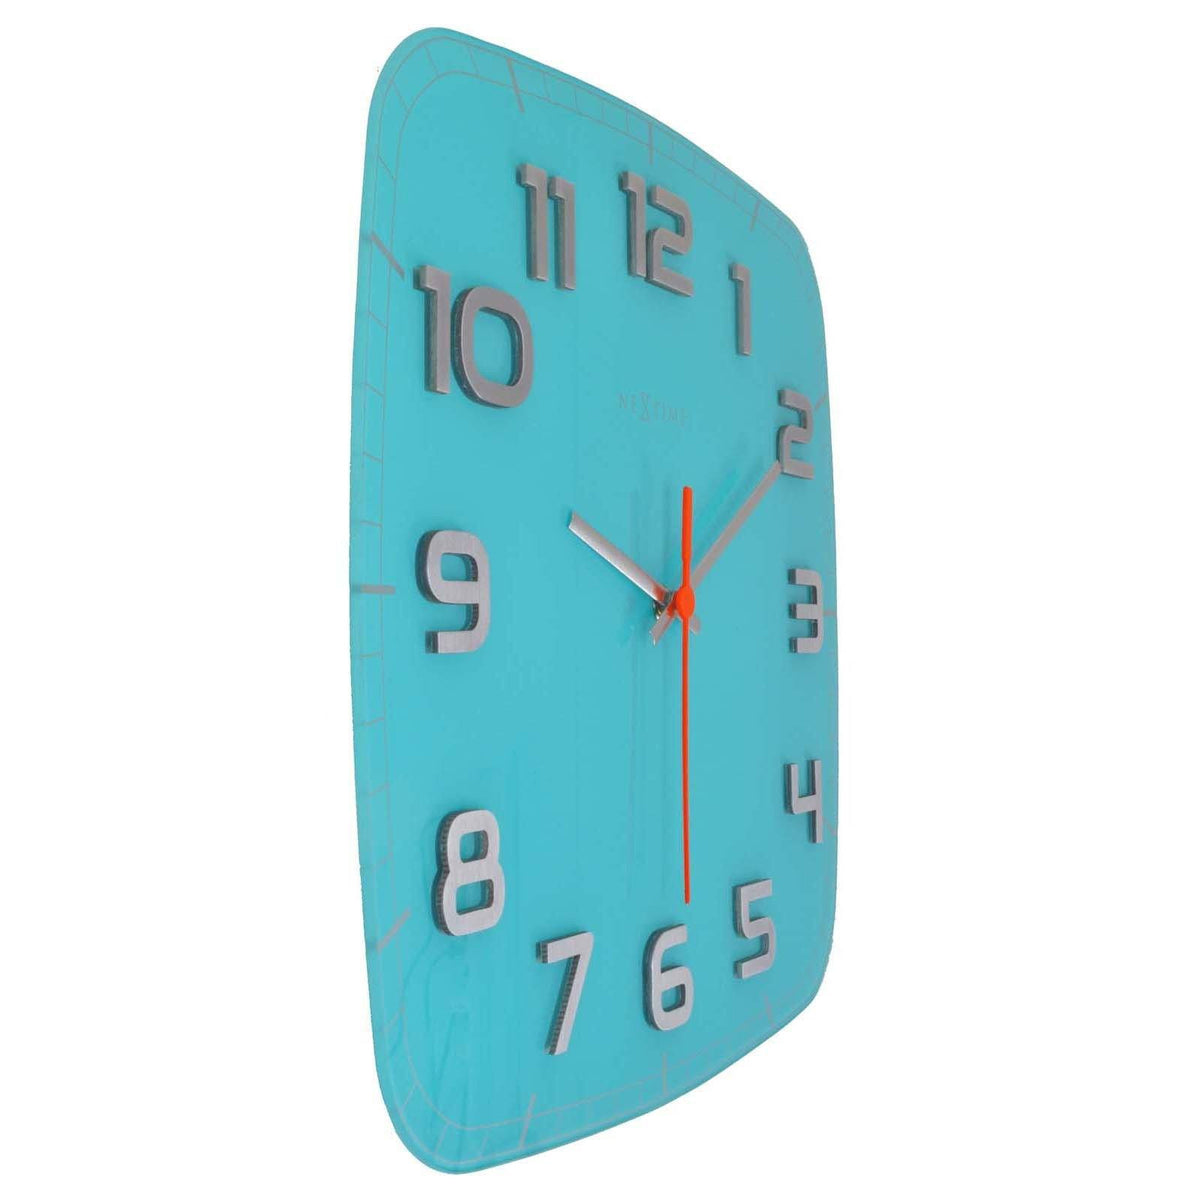 Buy NeXtime Classy Square Glass Wall Clock Turquoise 31cm Online